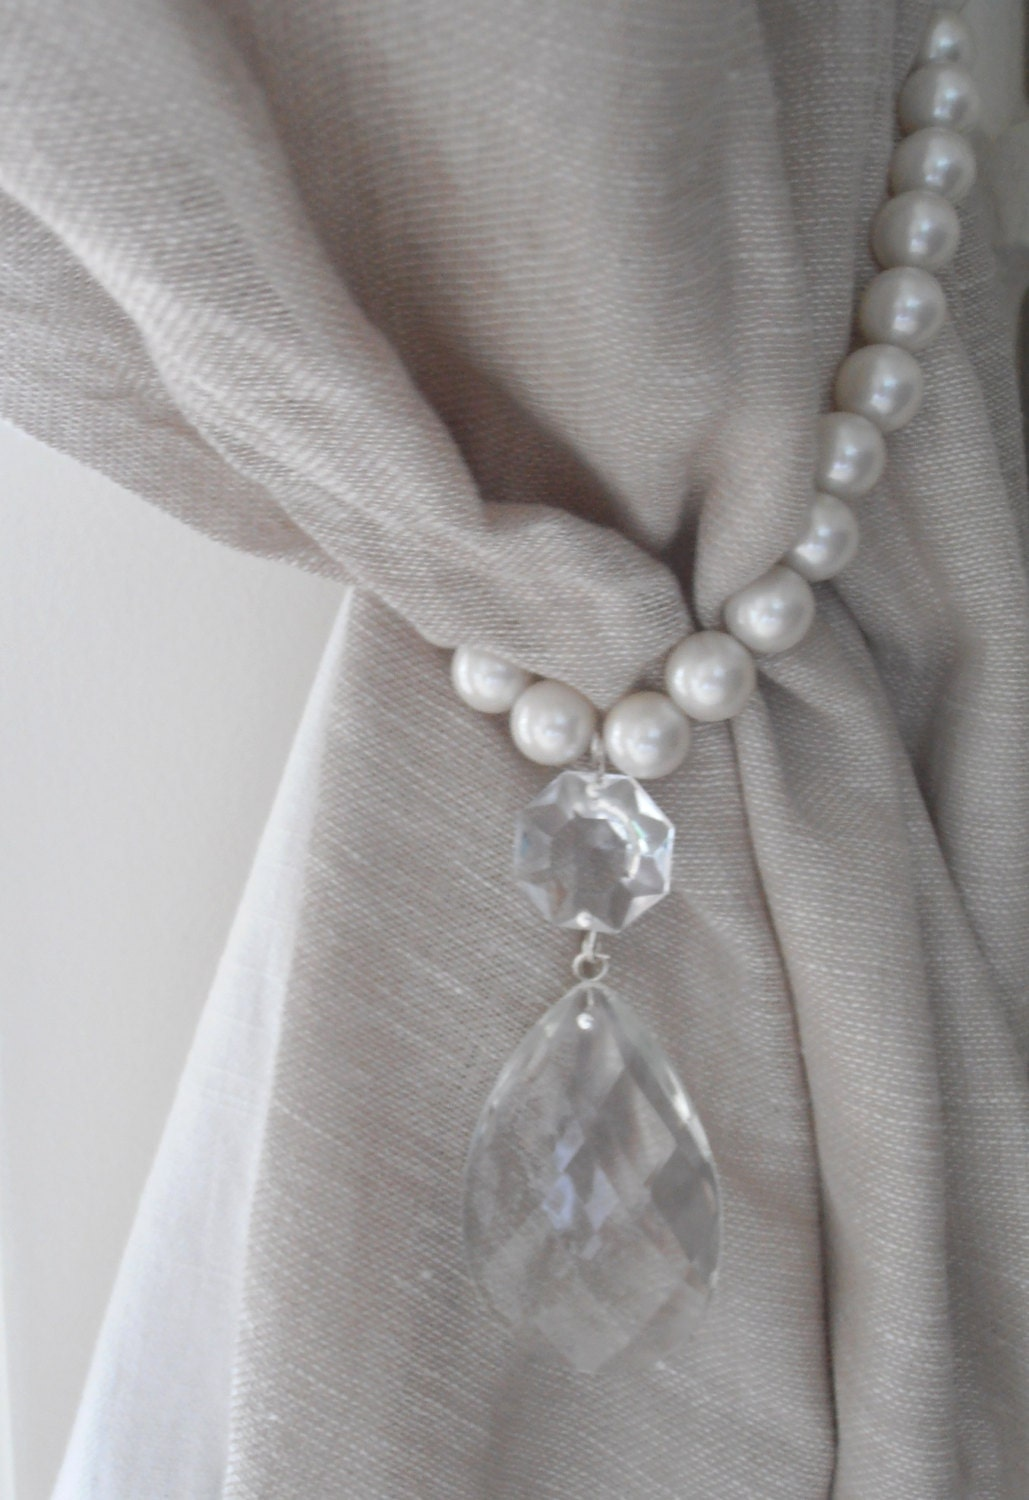 two decorative curtain tiebacks faux pearls vintage crystals drapery holder tie backs